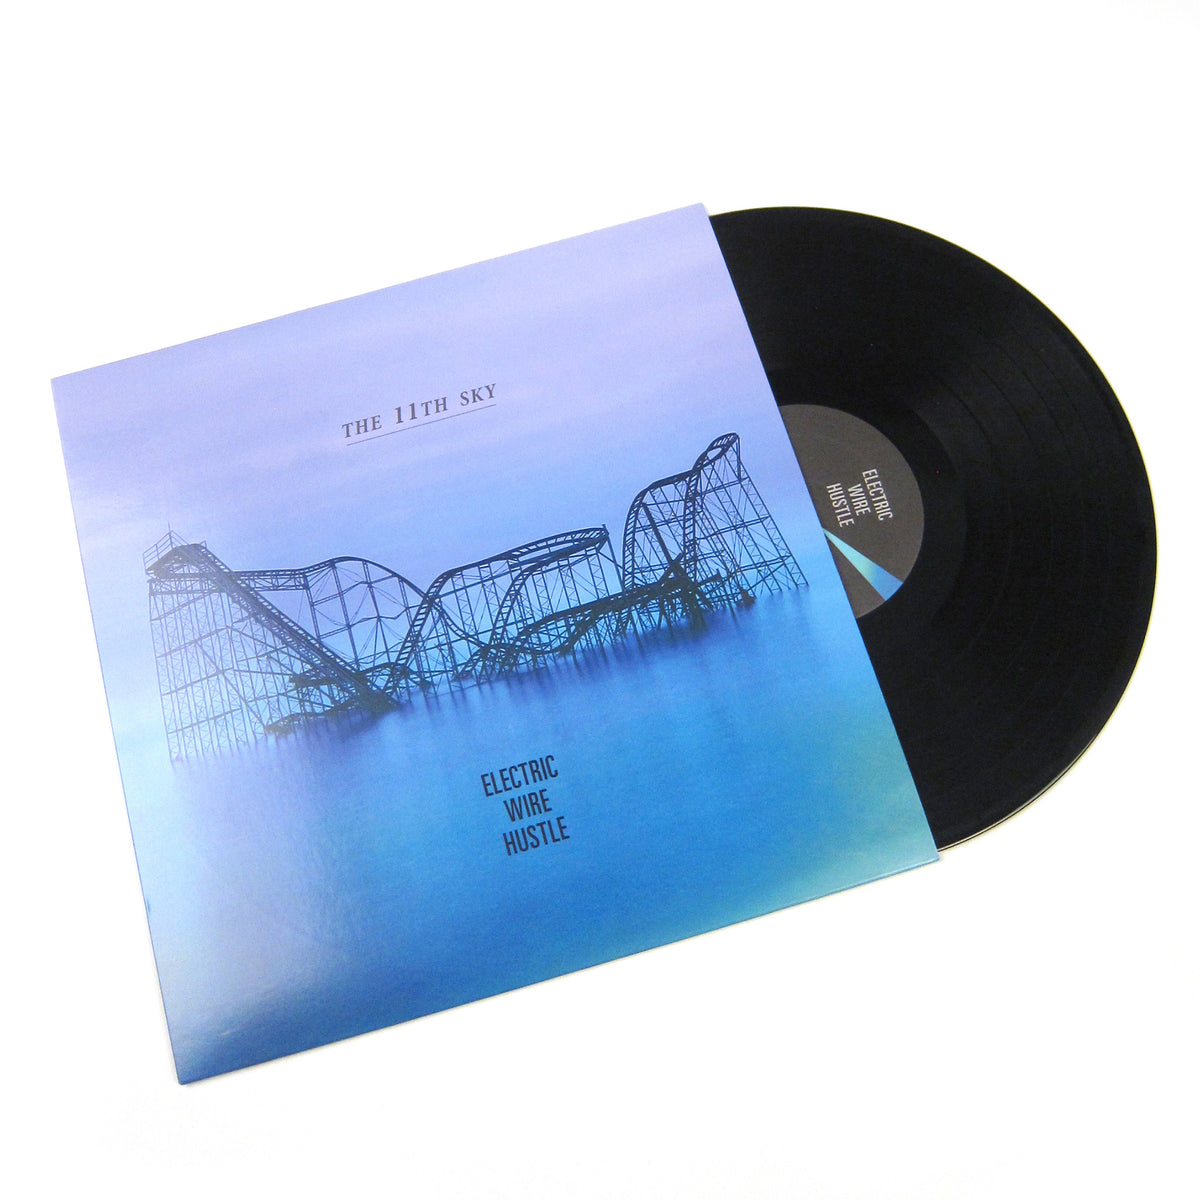 Electric Wire Hustle: The 11th Sky Vinyl LP